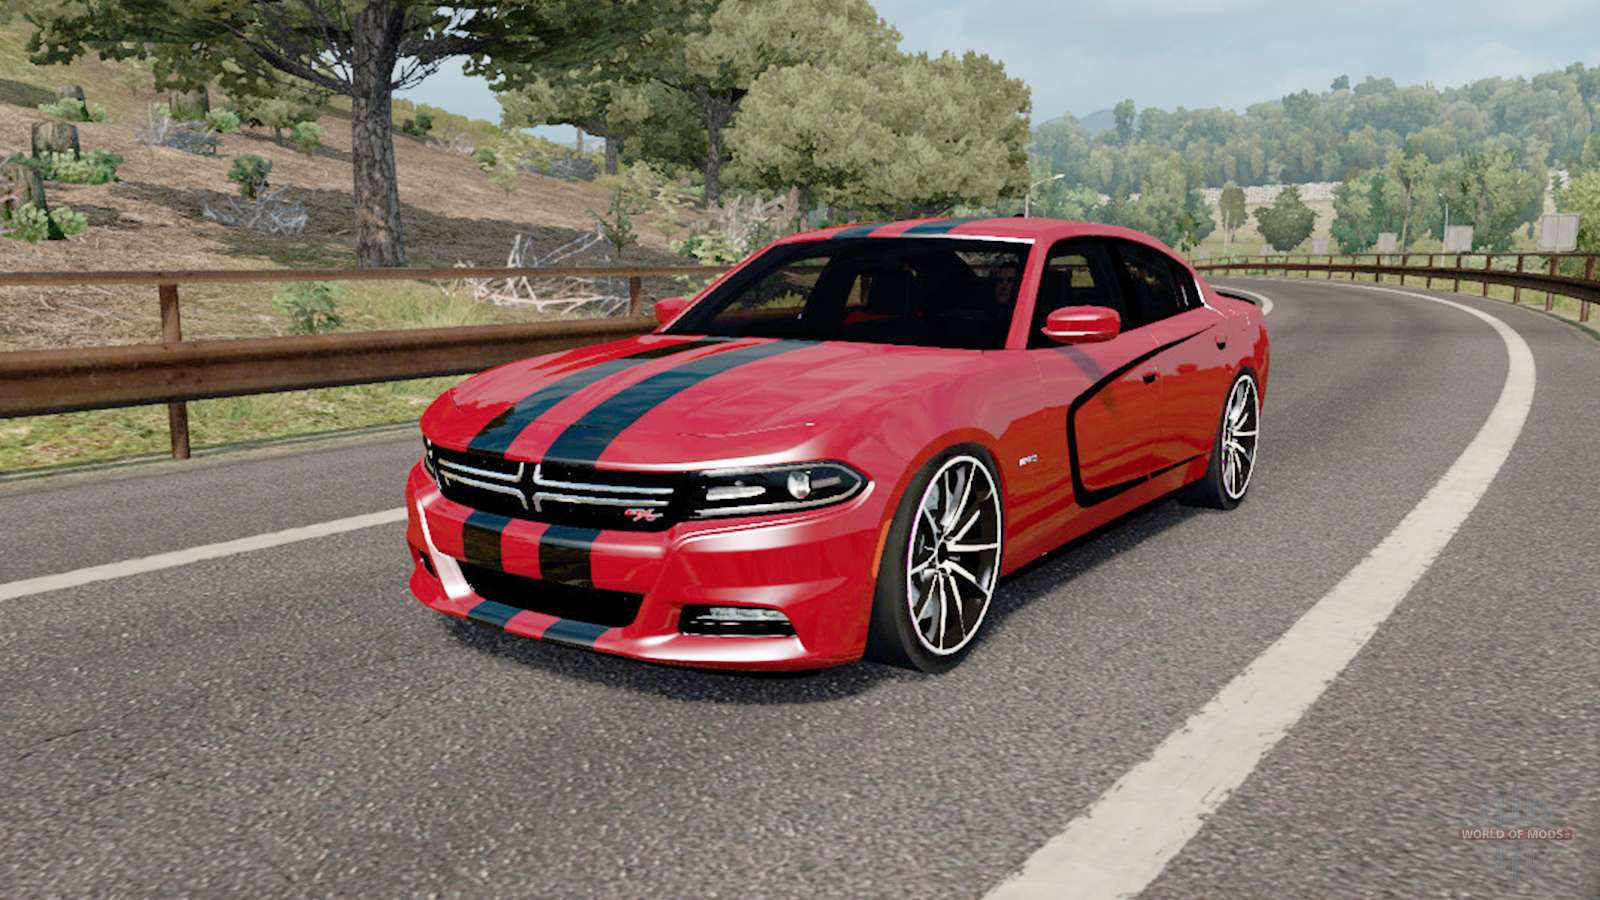 Charger Rt Awd >> Dodge Charger RT (LD) 2016 for Euro Truck Simulator 2